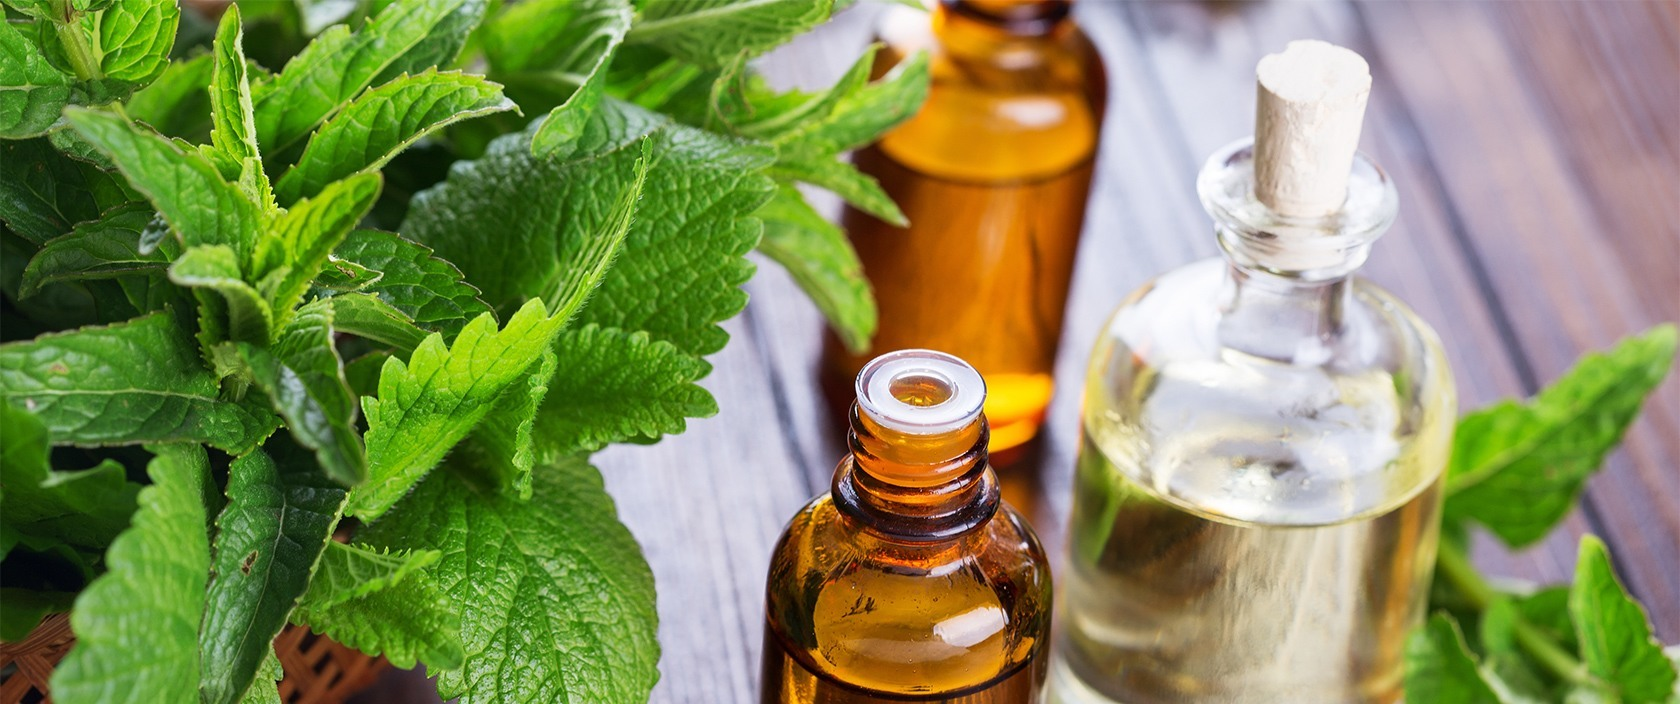 Peppermint Oil as a Natural Mouse Repellent